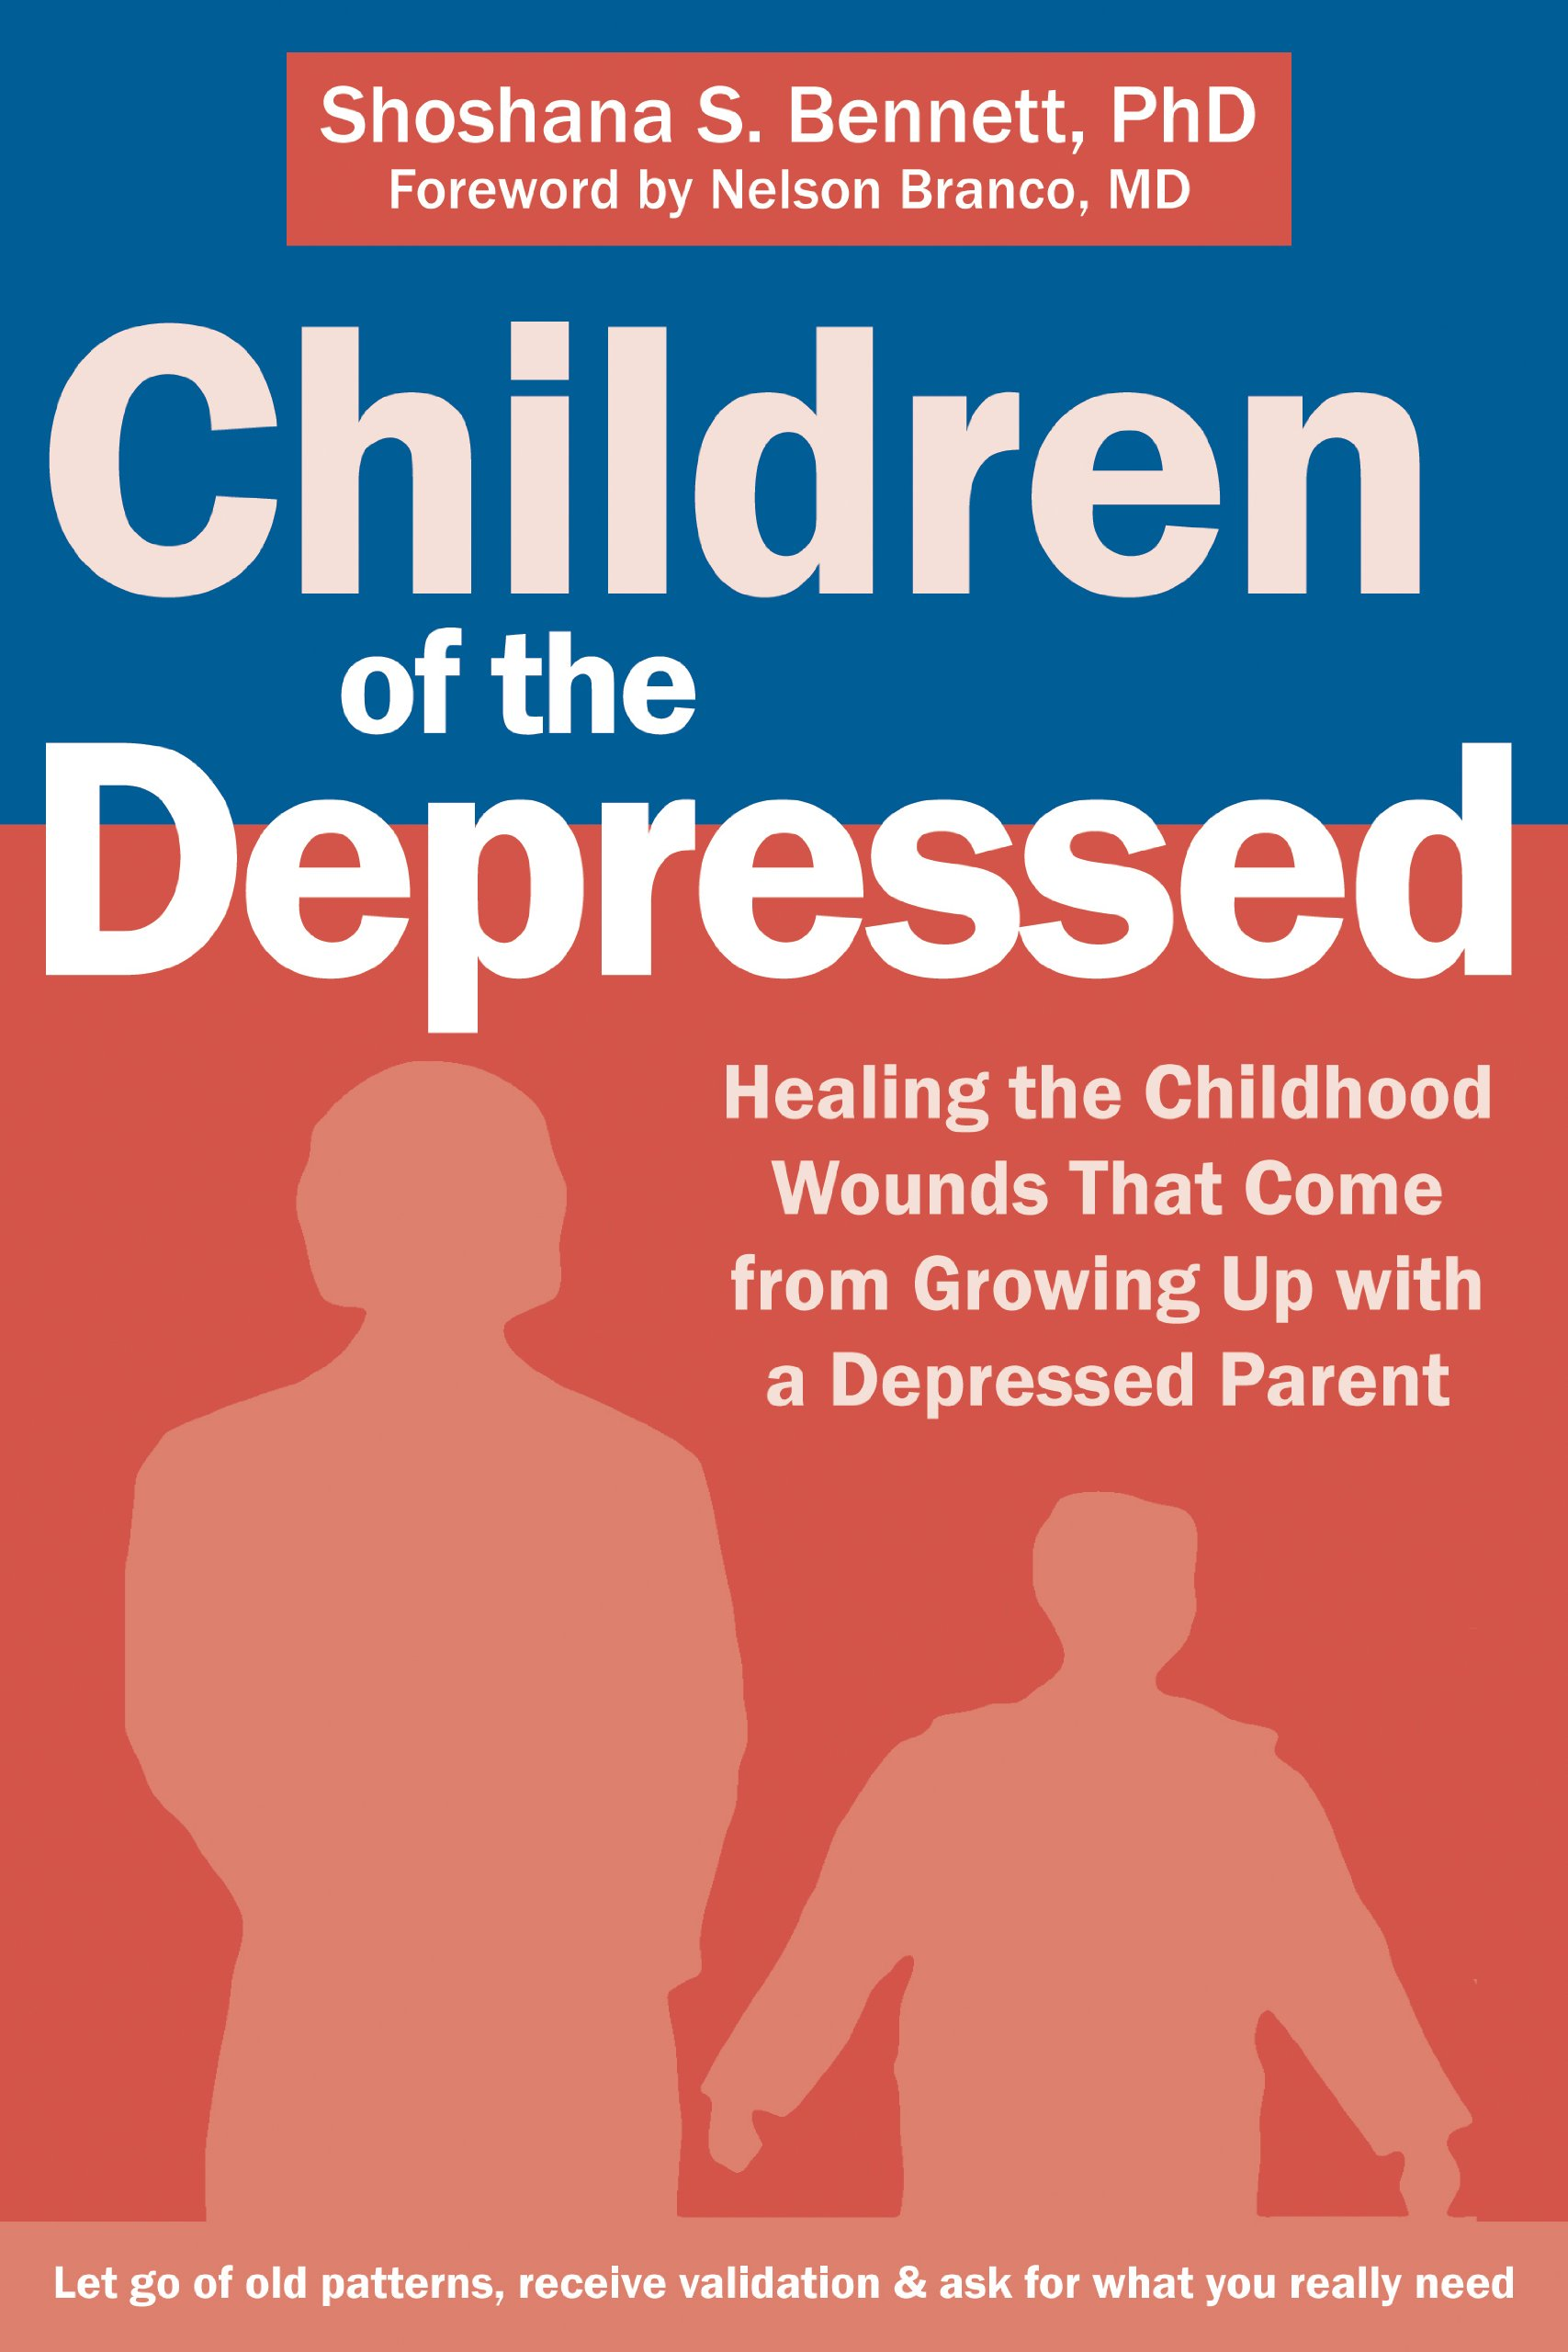 Children of the depressed healing the childhood wounds that come children of the depressed healing the childhood wounds that come from growing up with a depressed parent shoshana s bennett phd dr nelson branco md fandeluxe Images